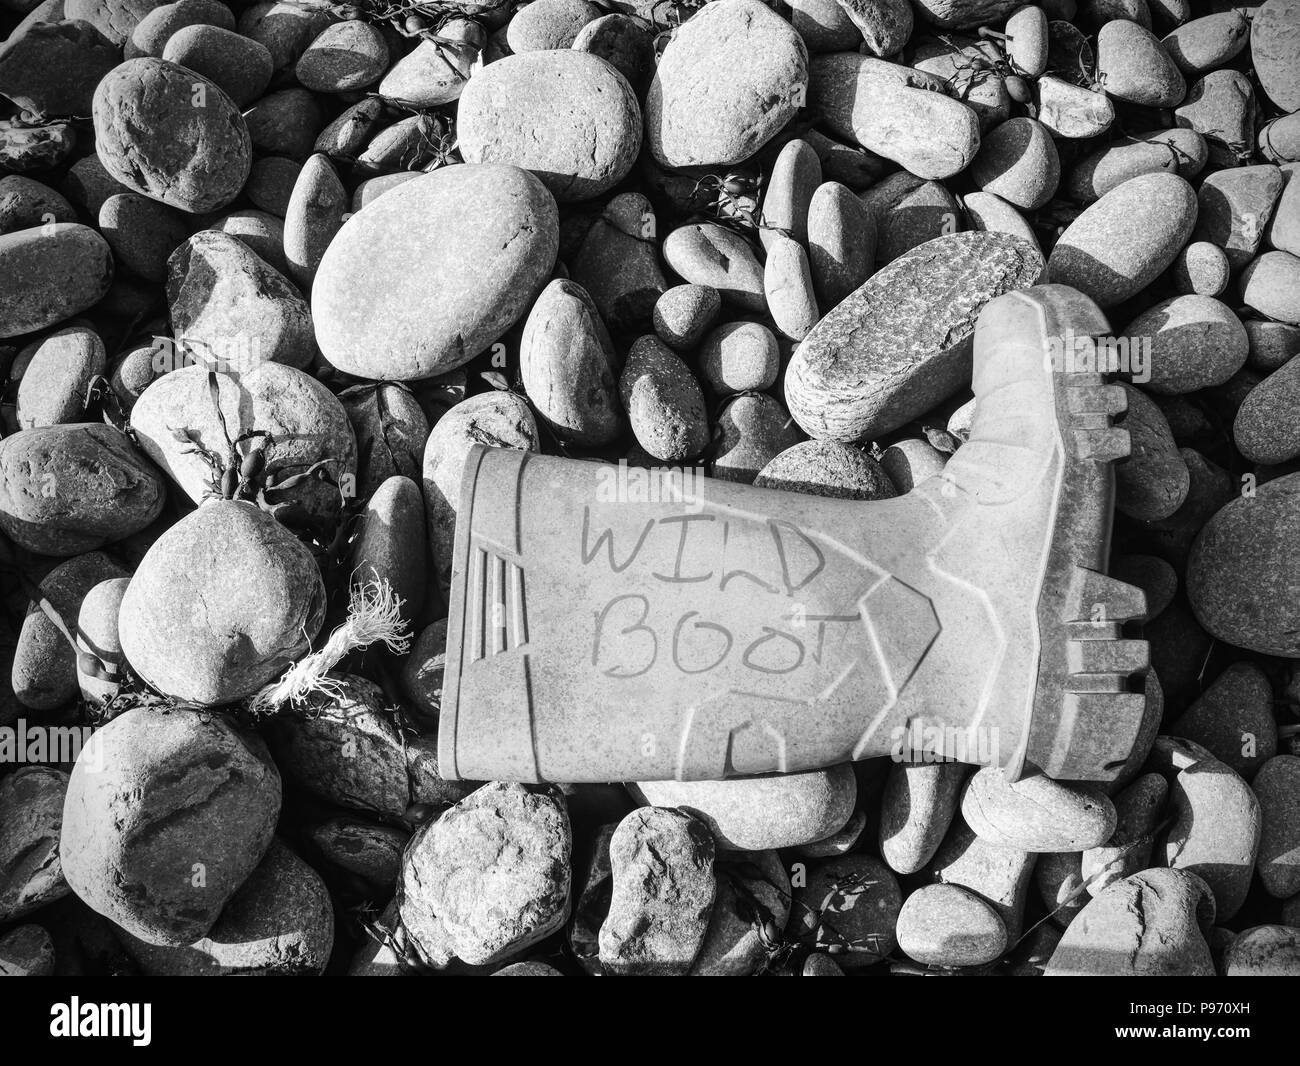 Dangerous garbage ejected from the sea on remote beaches. Environmental contamination with toxic mess. Stock Photo